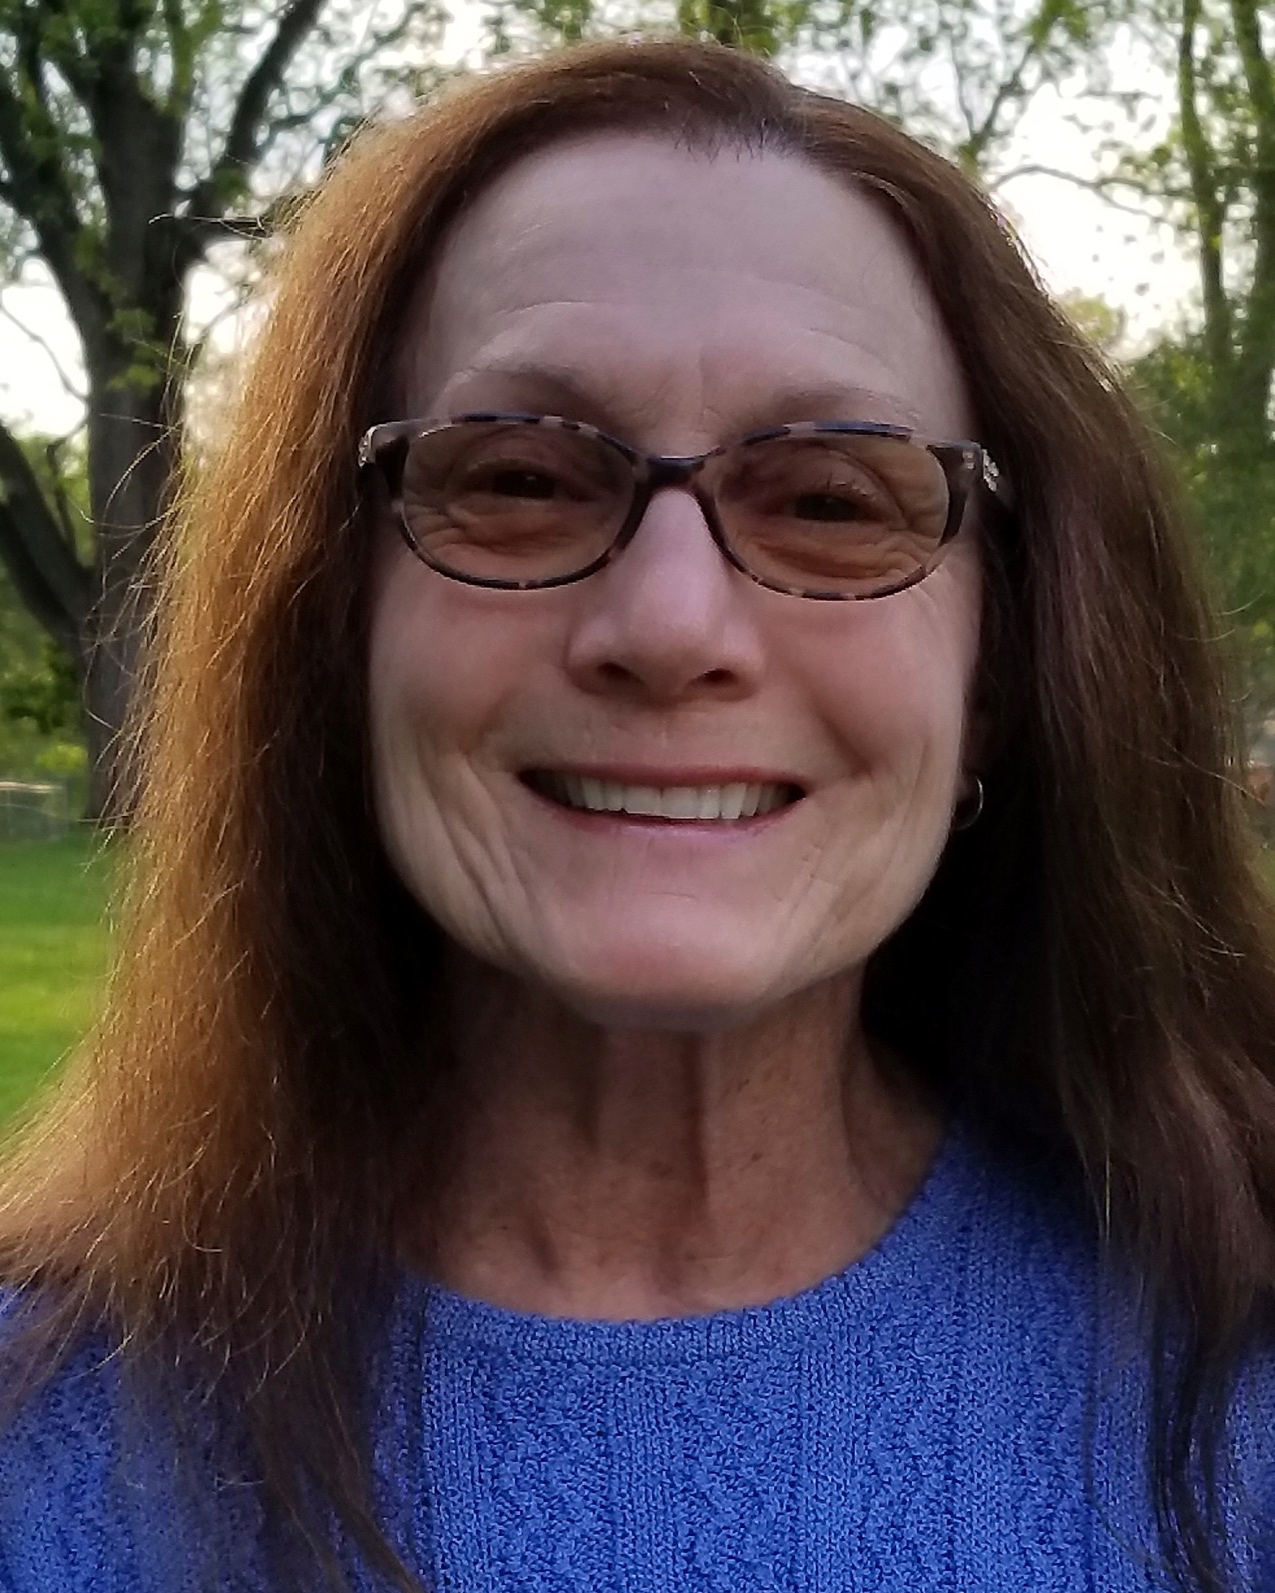 Linda Reik - Retired from a career as a research biochemist. She serves on the board of SASD. She has served as SASD liaison to the New York state-wide organization 'New York Energy Democracy Alliance' since 2016.